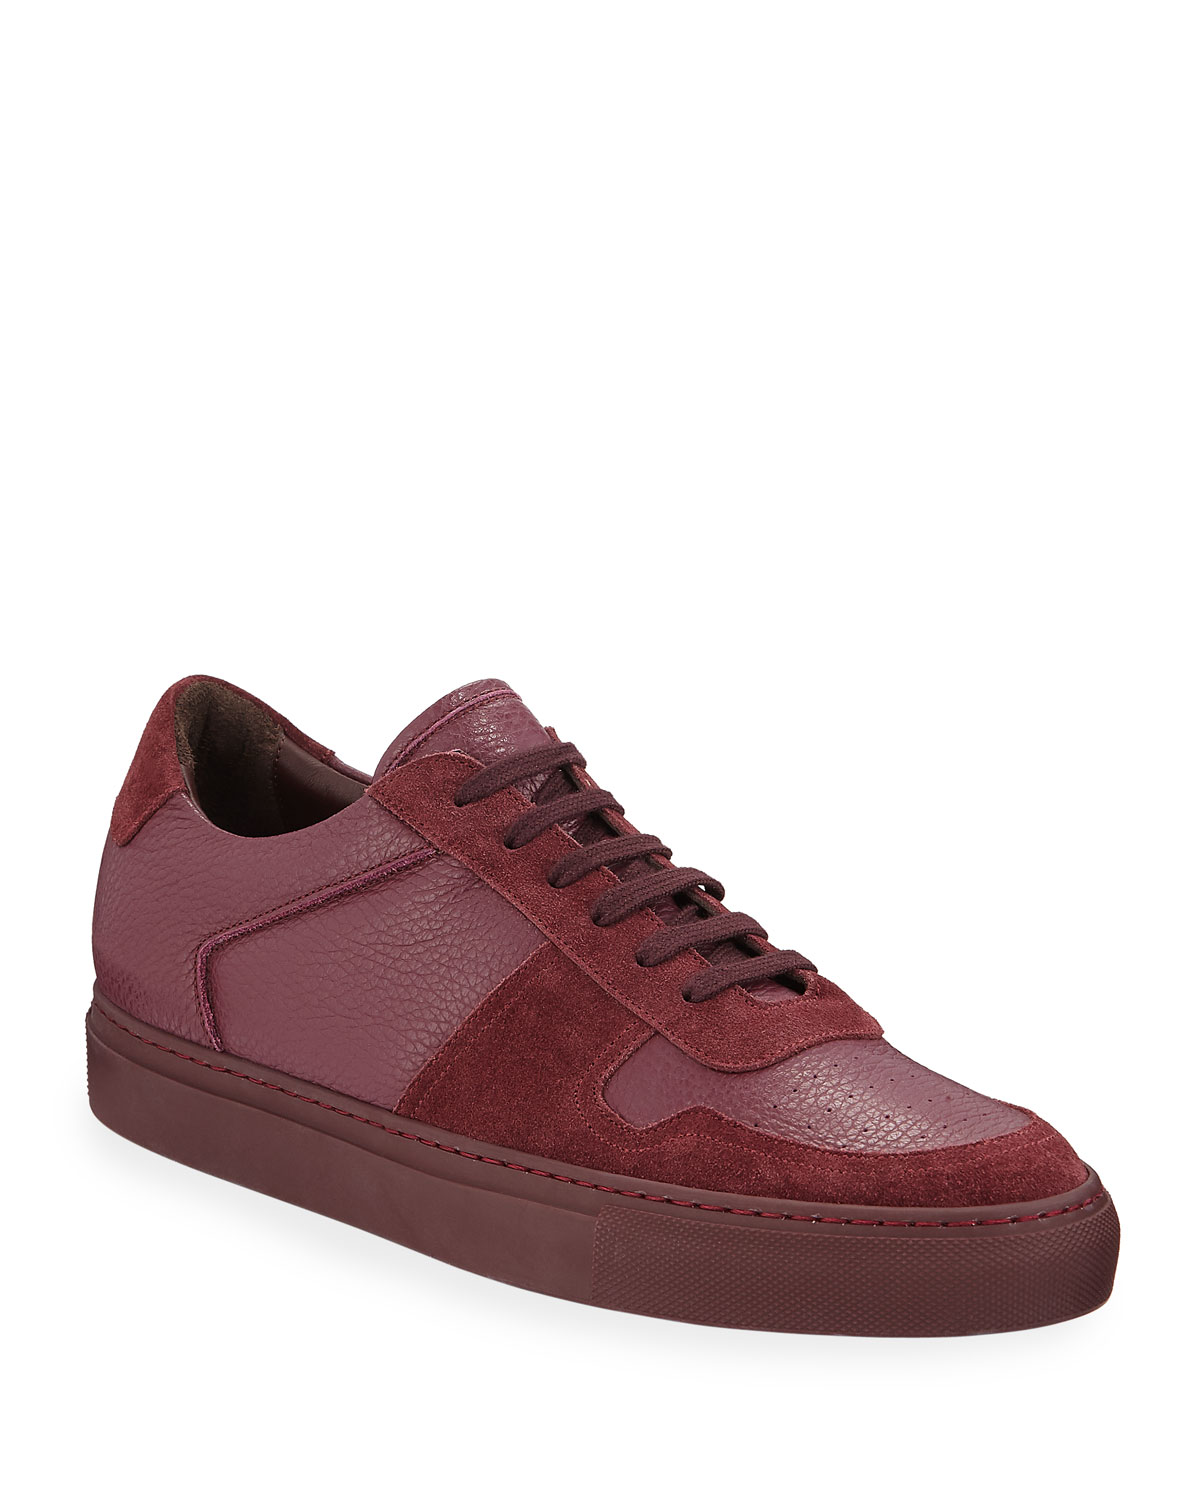 BBall Low-Top Leather Sneakers